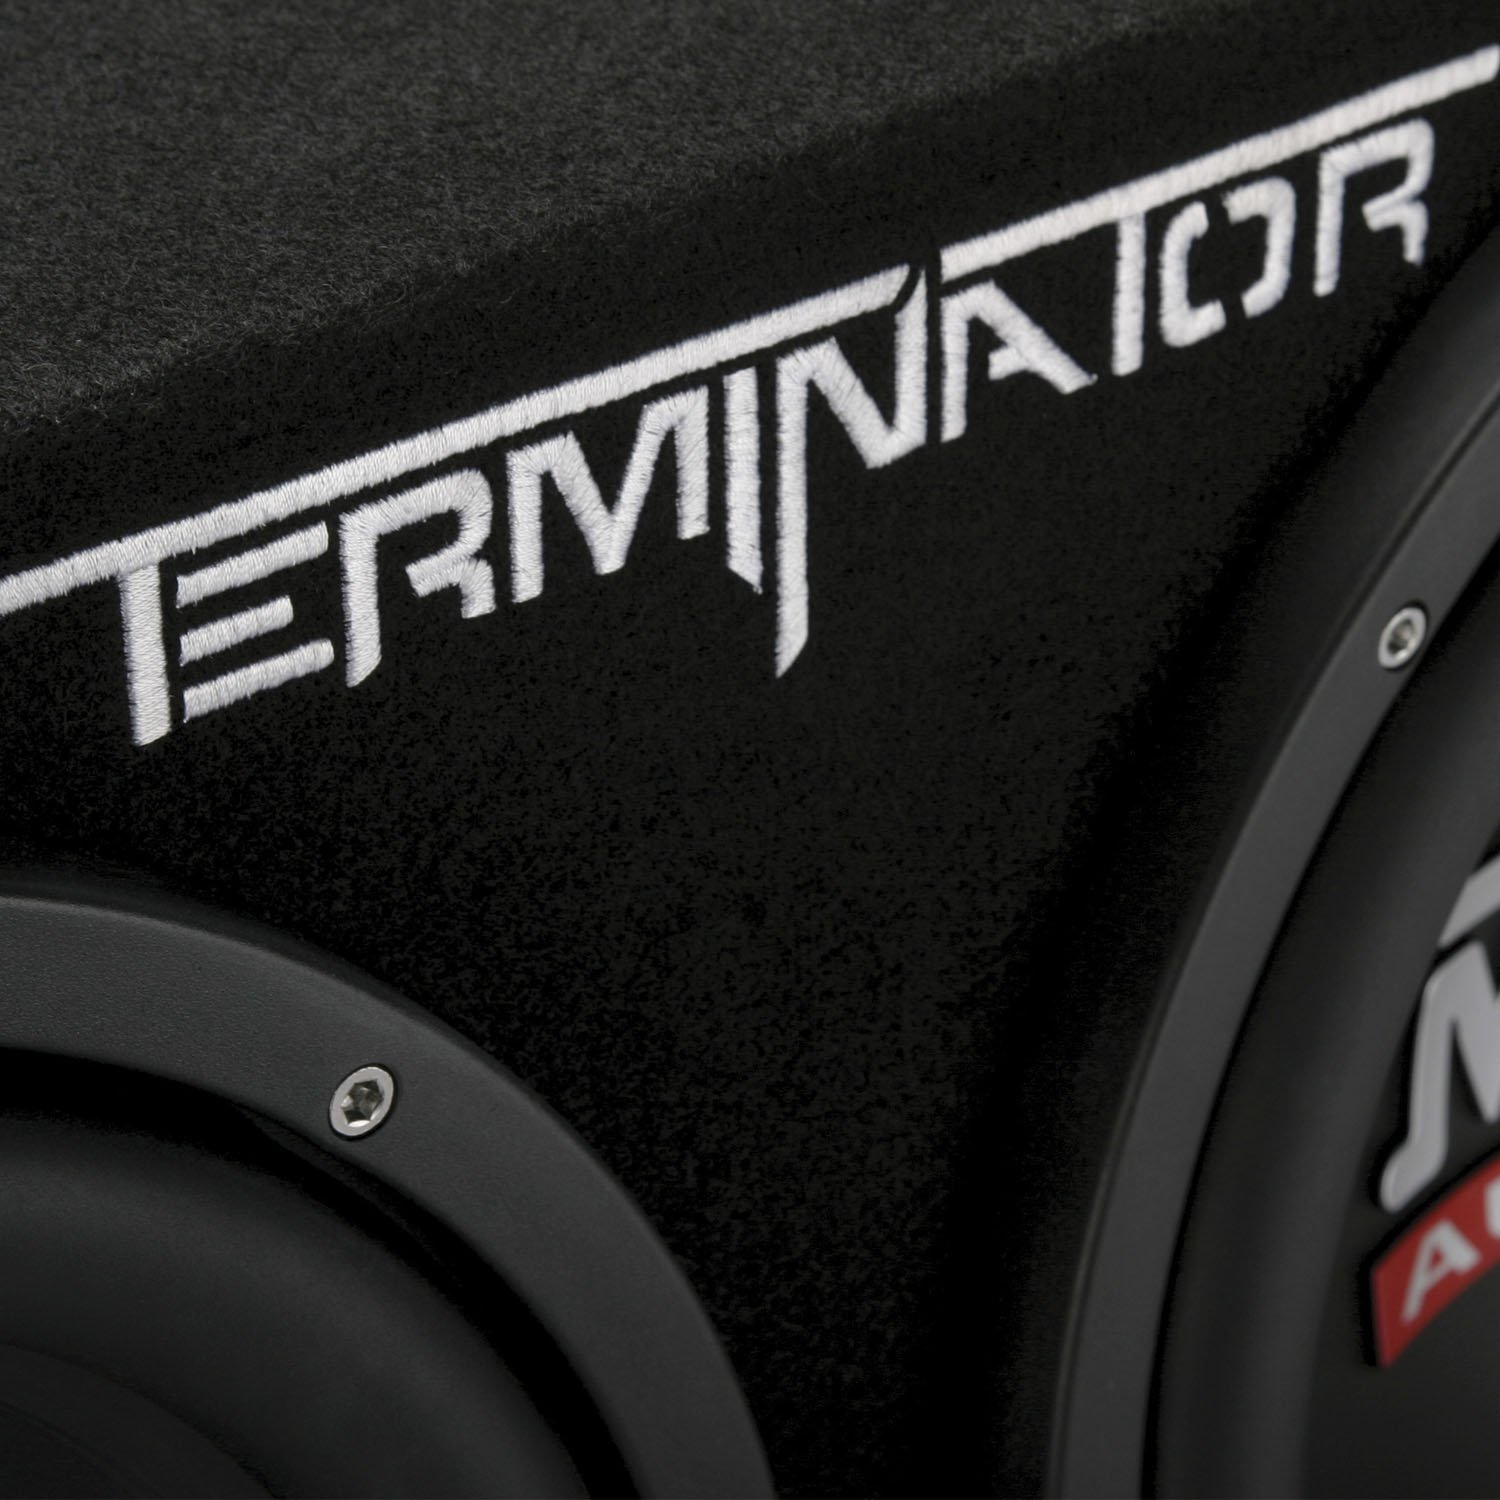 Mtx Audio Terminator Series Tne212d 1200 Watt Dual 12 Wiring Inside Subwoofer Box Inch Sub Enclosure Car Electronics